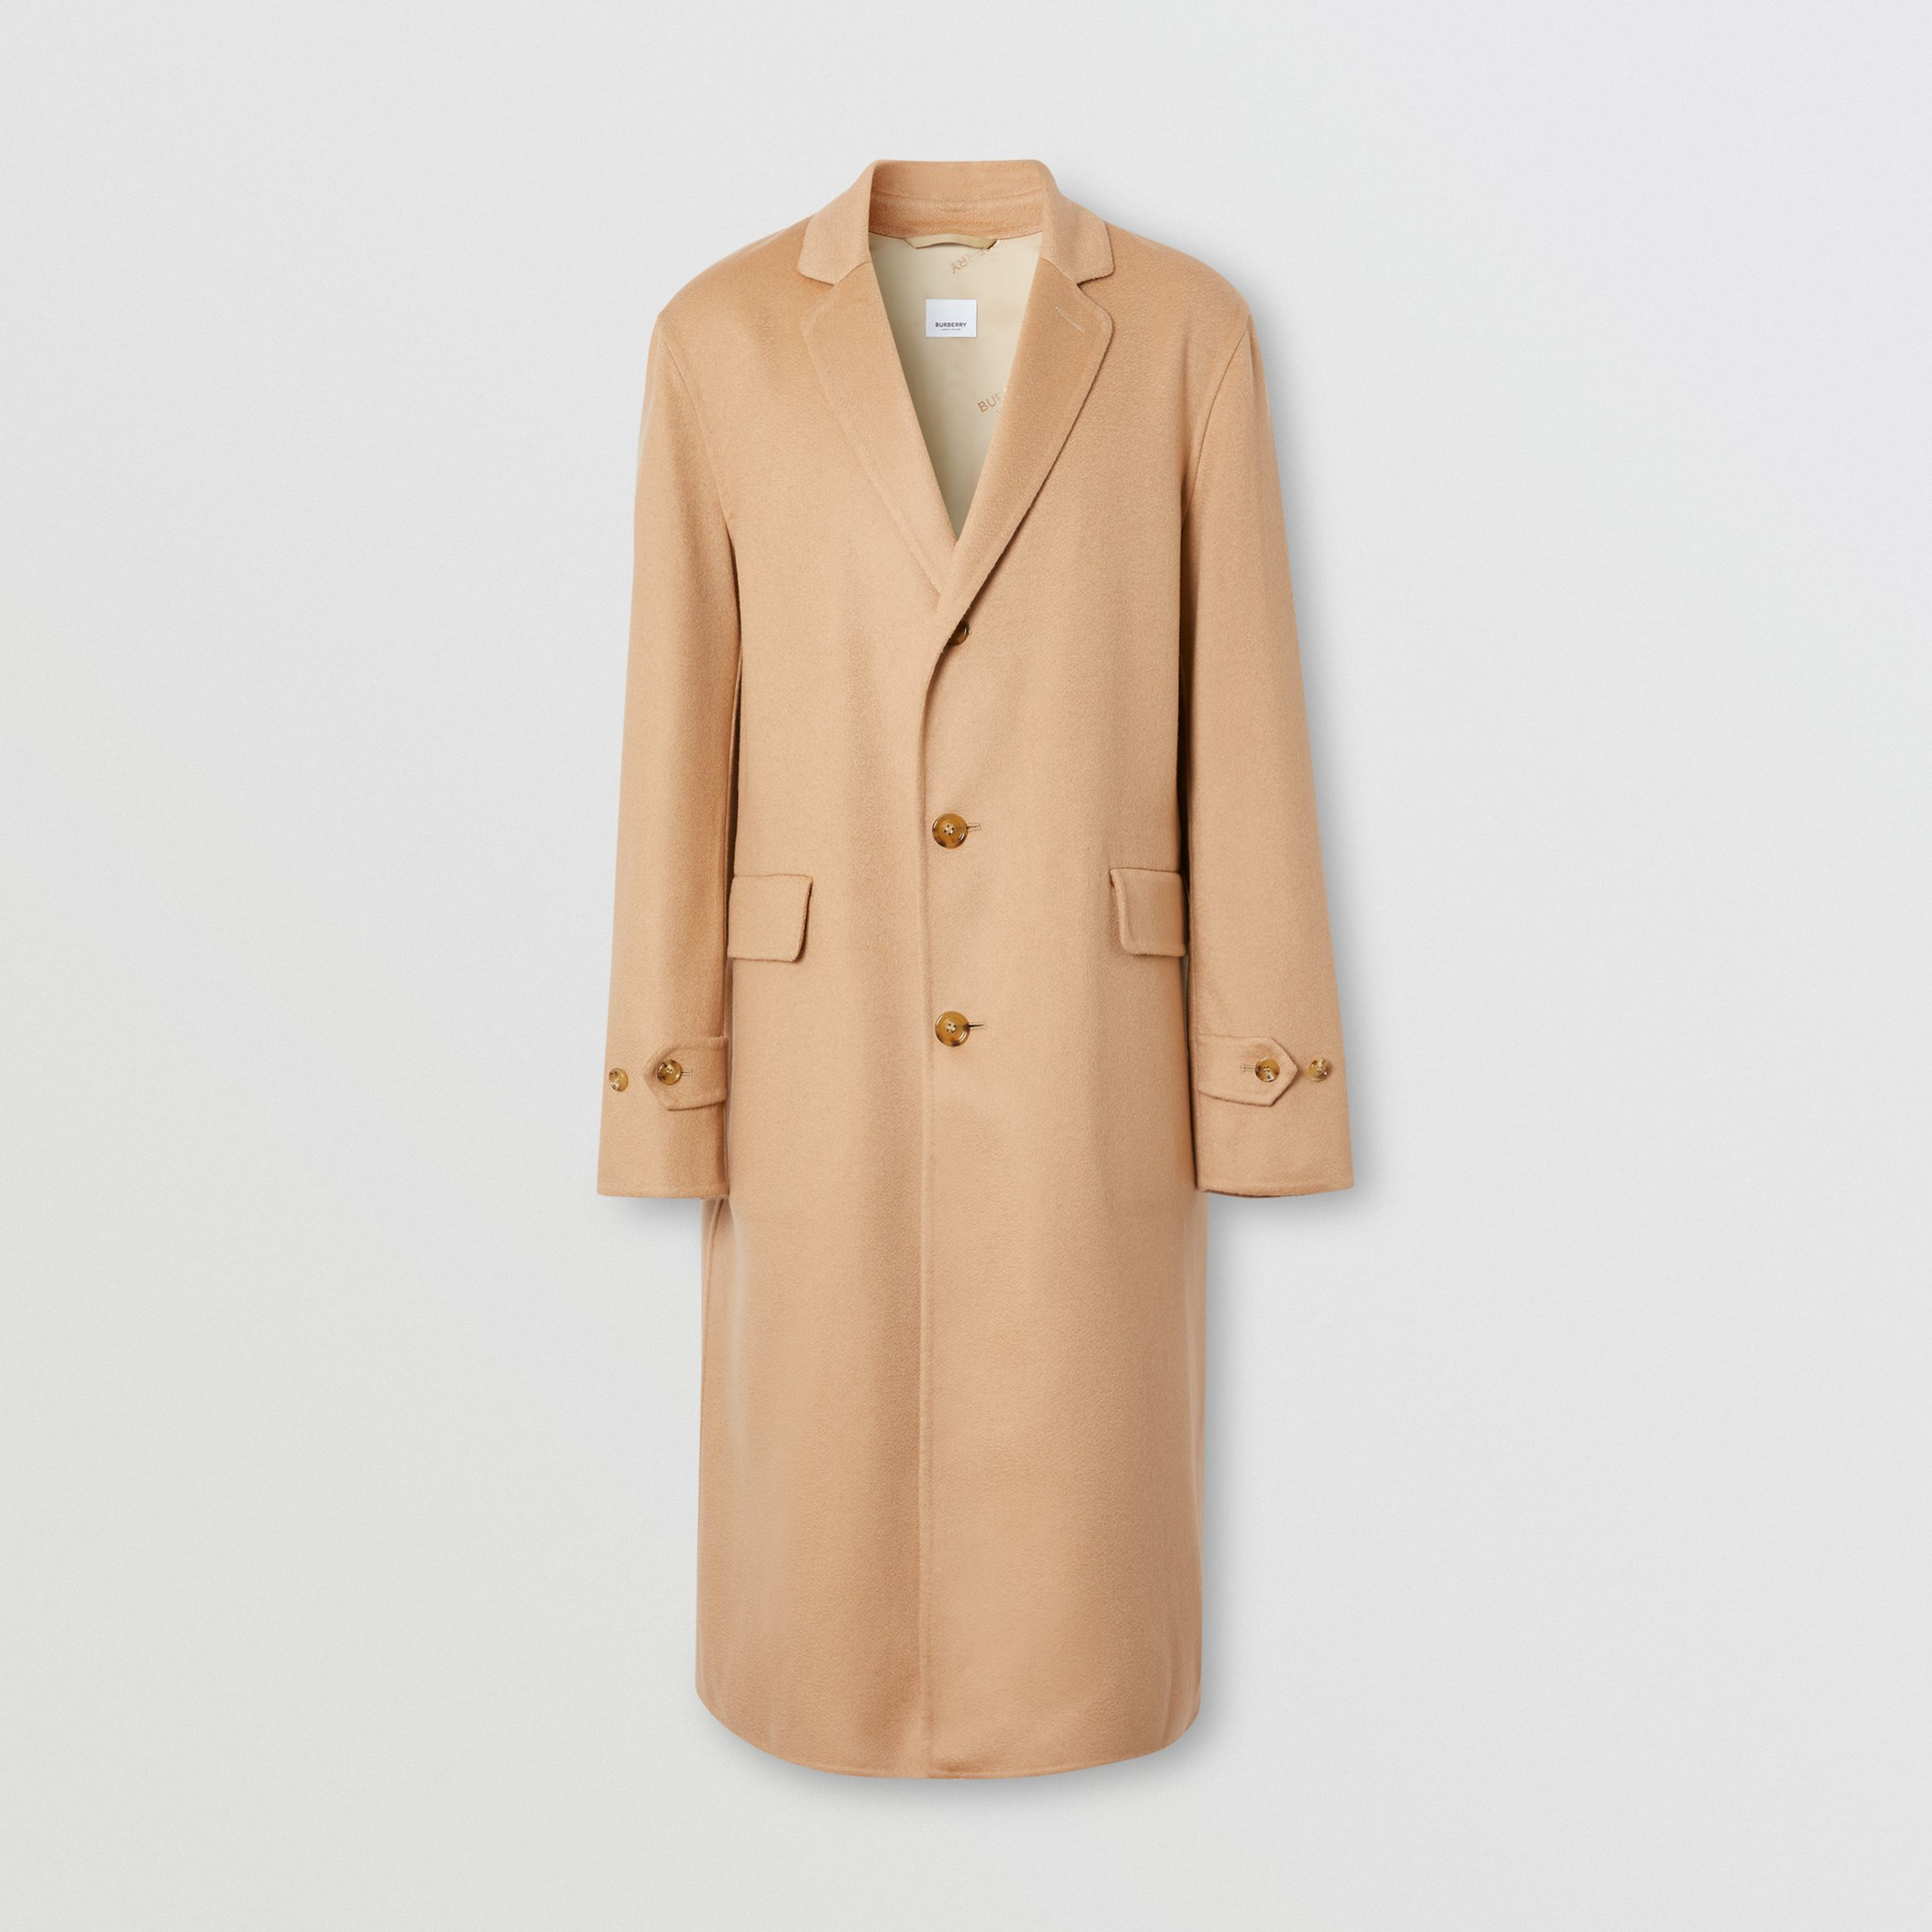 Double-faced Cashmere Lab Coat in Camel - Men | Burberry Hong Kong S.A.R. - 4